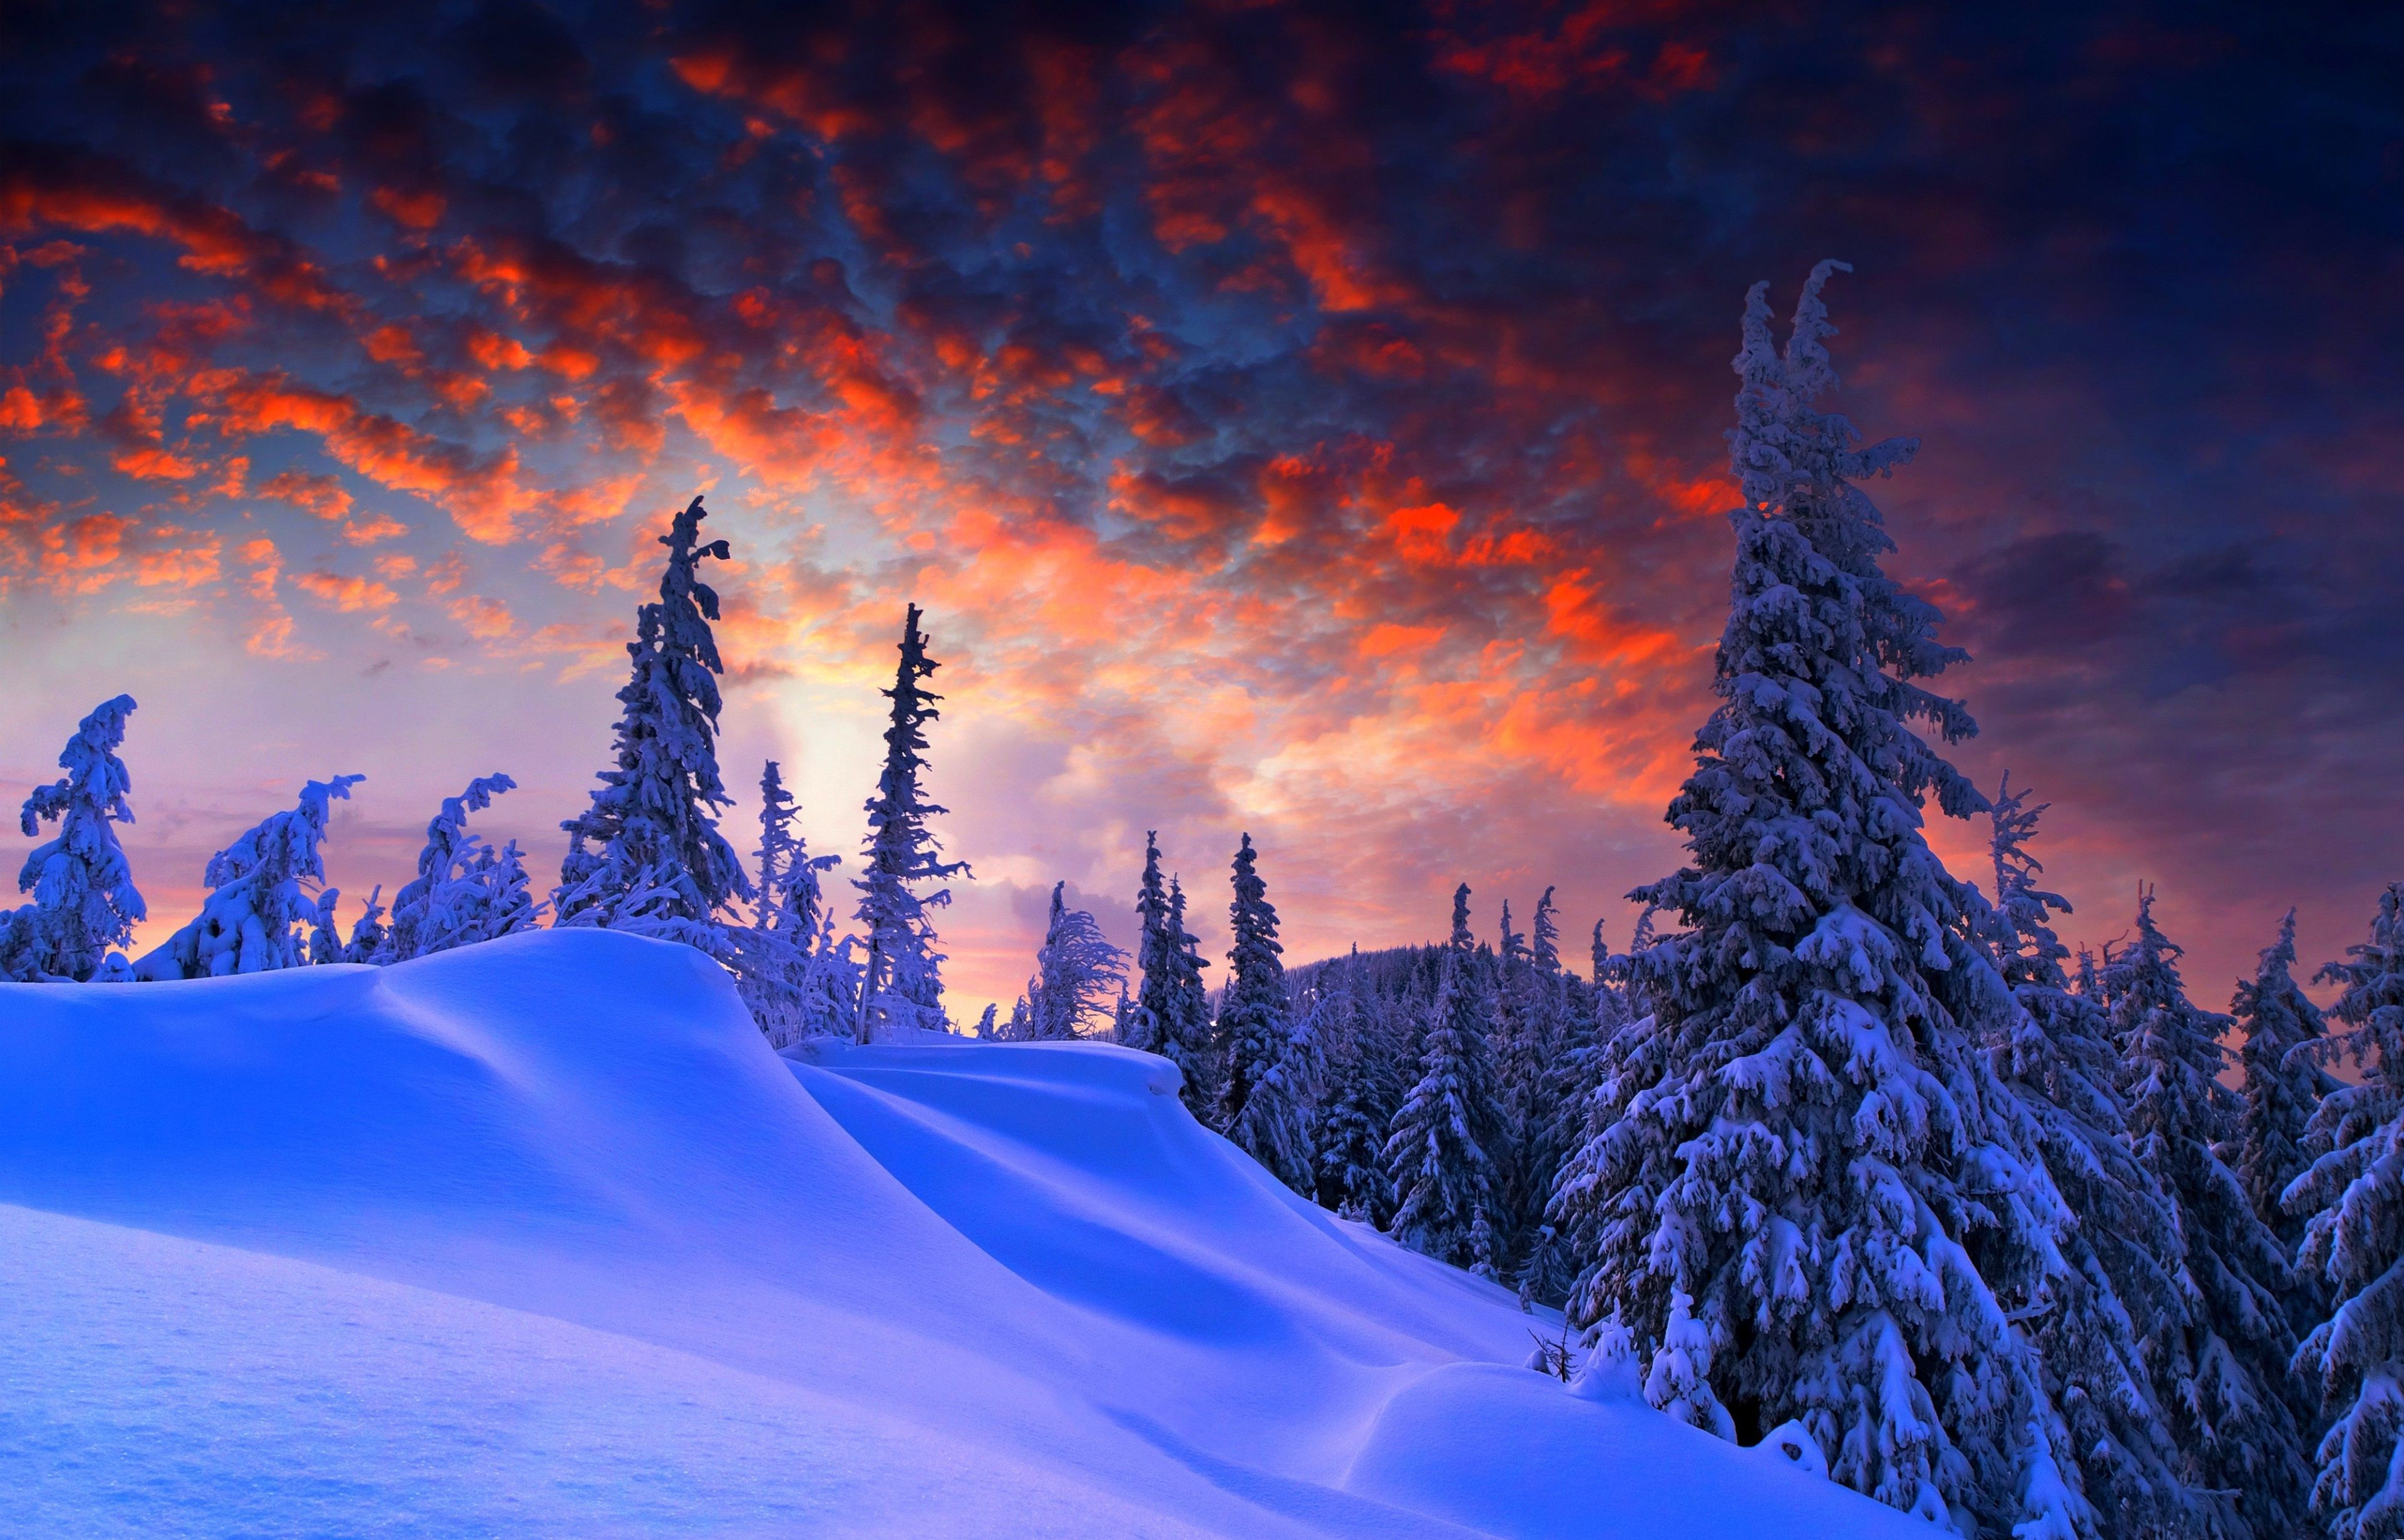 3840x2460 Winter 4k Desktop Wallpaper Hd Winter Wallpaper Winter Sunset Winter Desktop Background